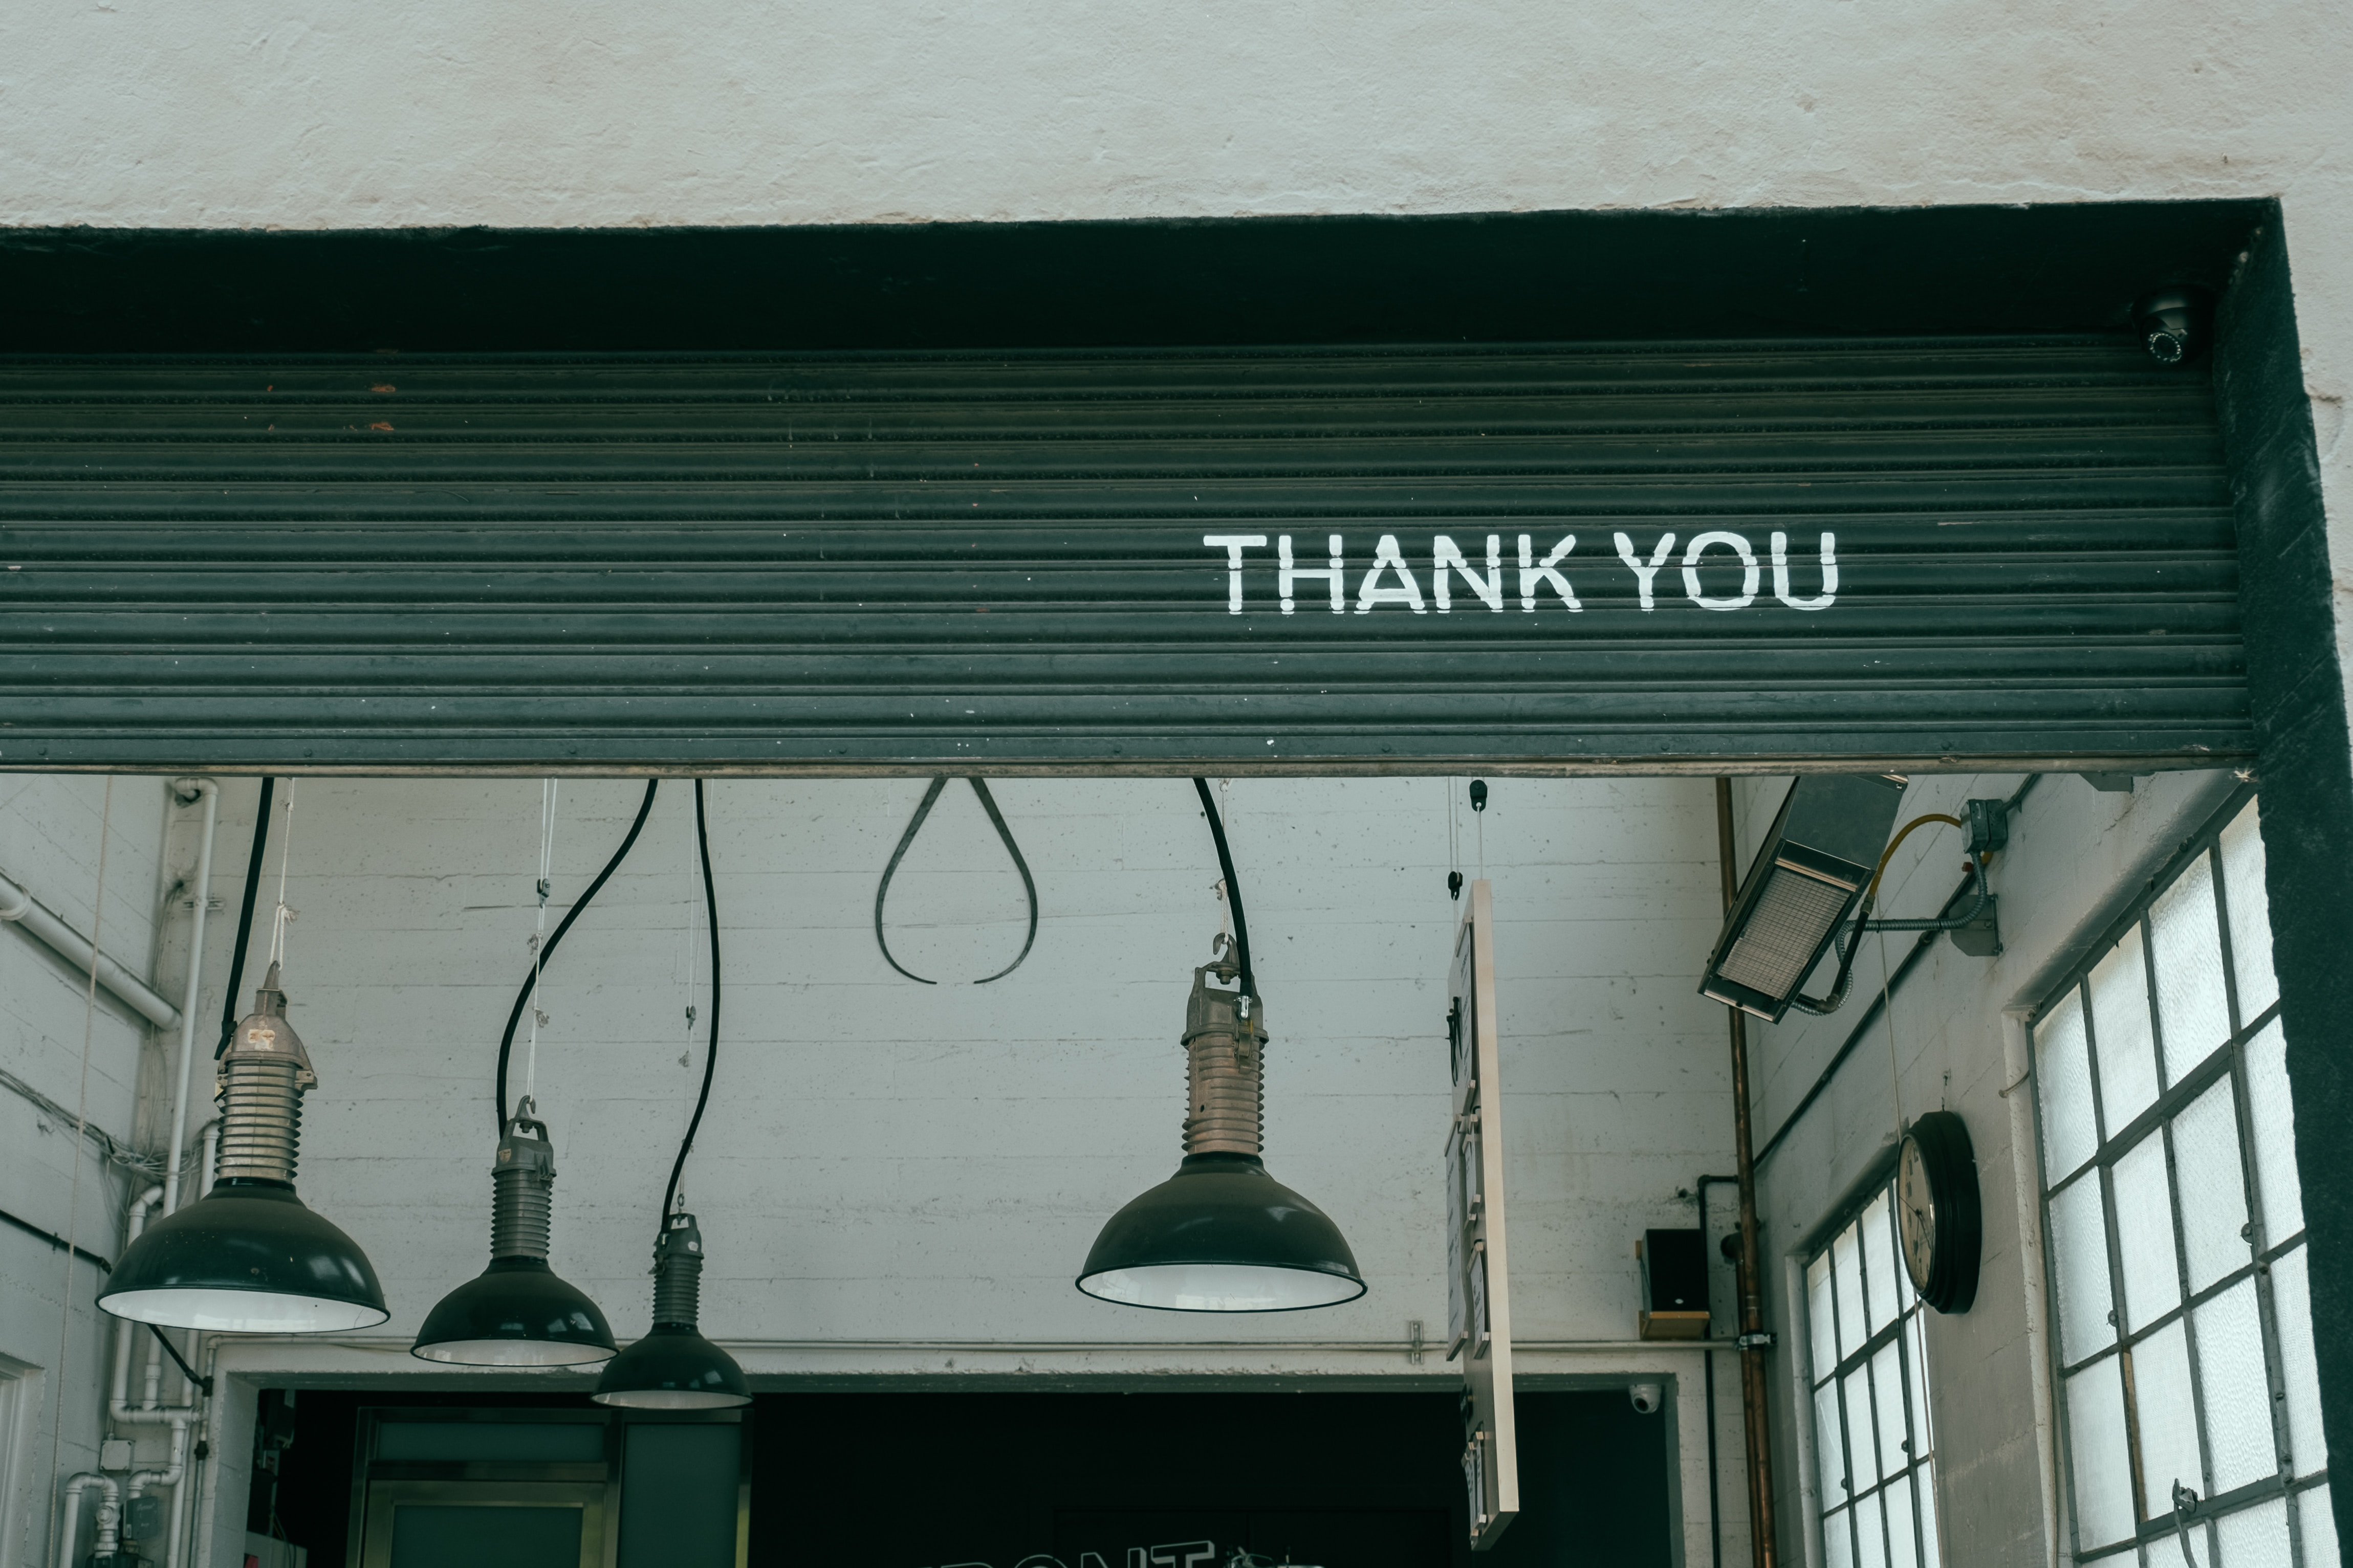 A Quick Thank You to the People Who Keep Things Running